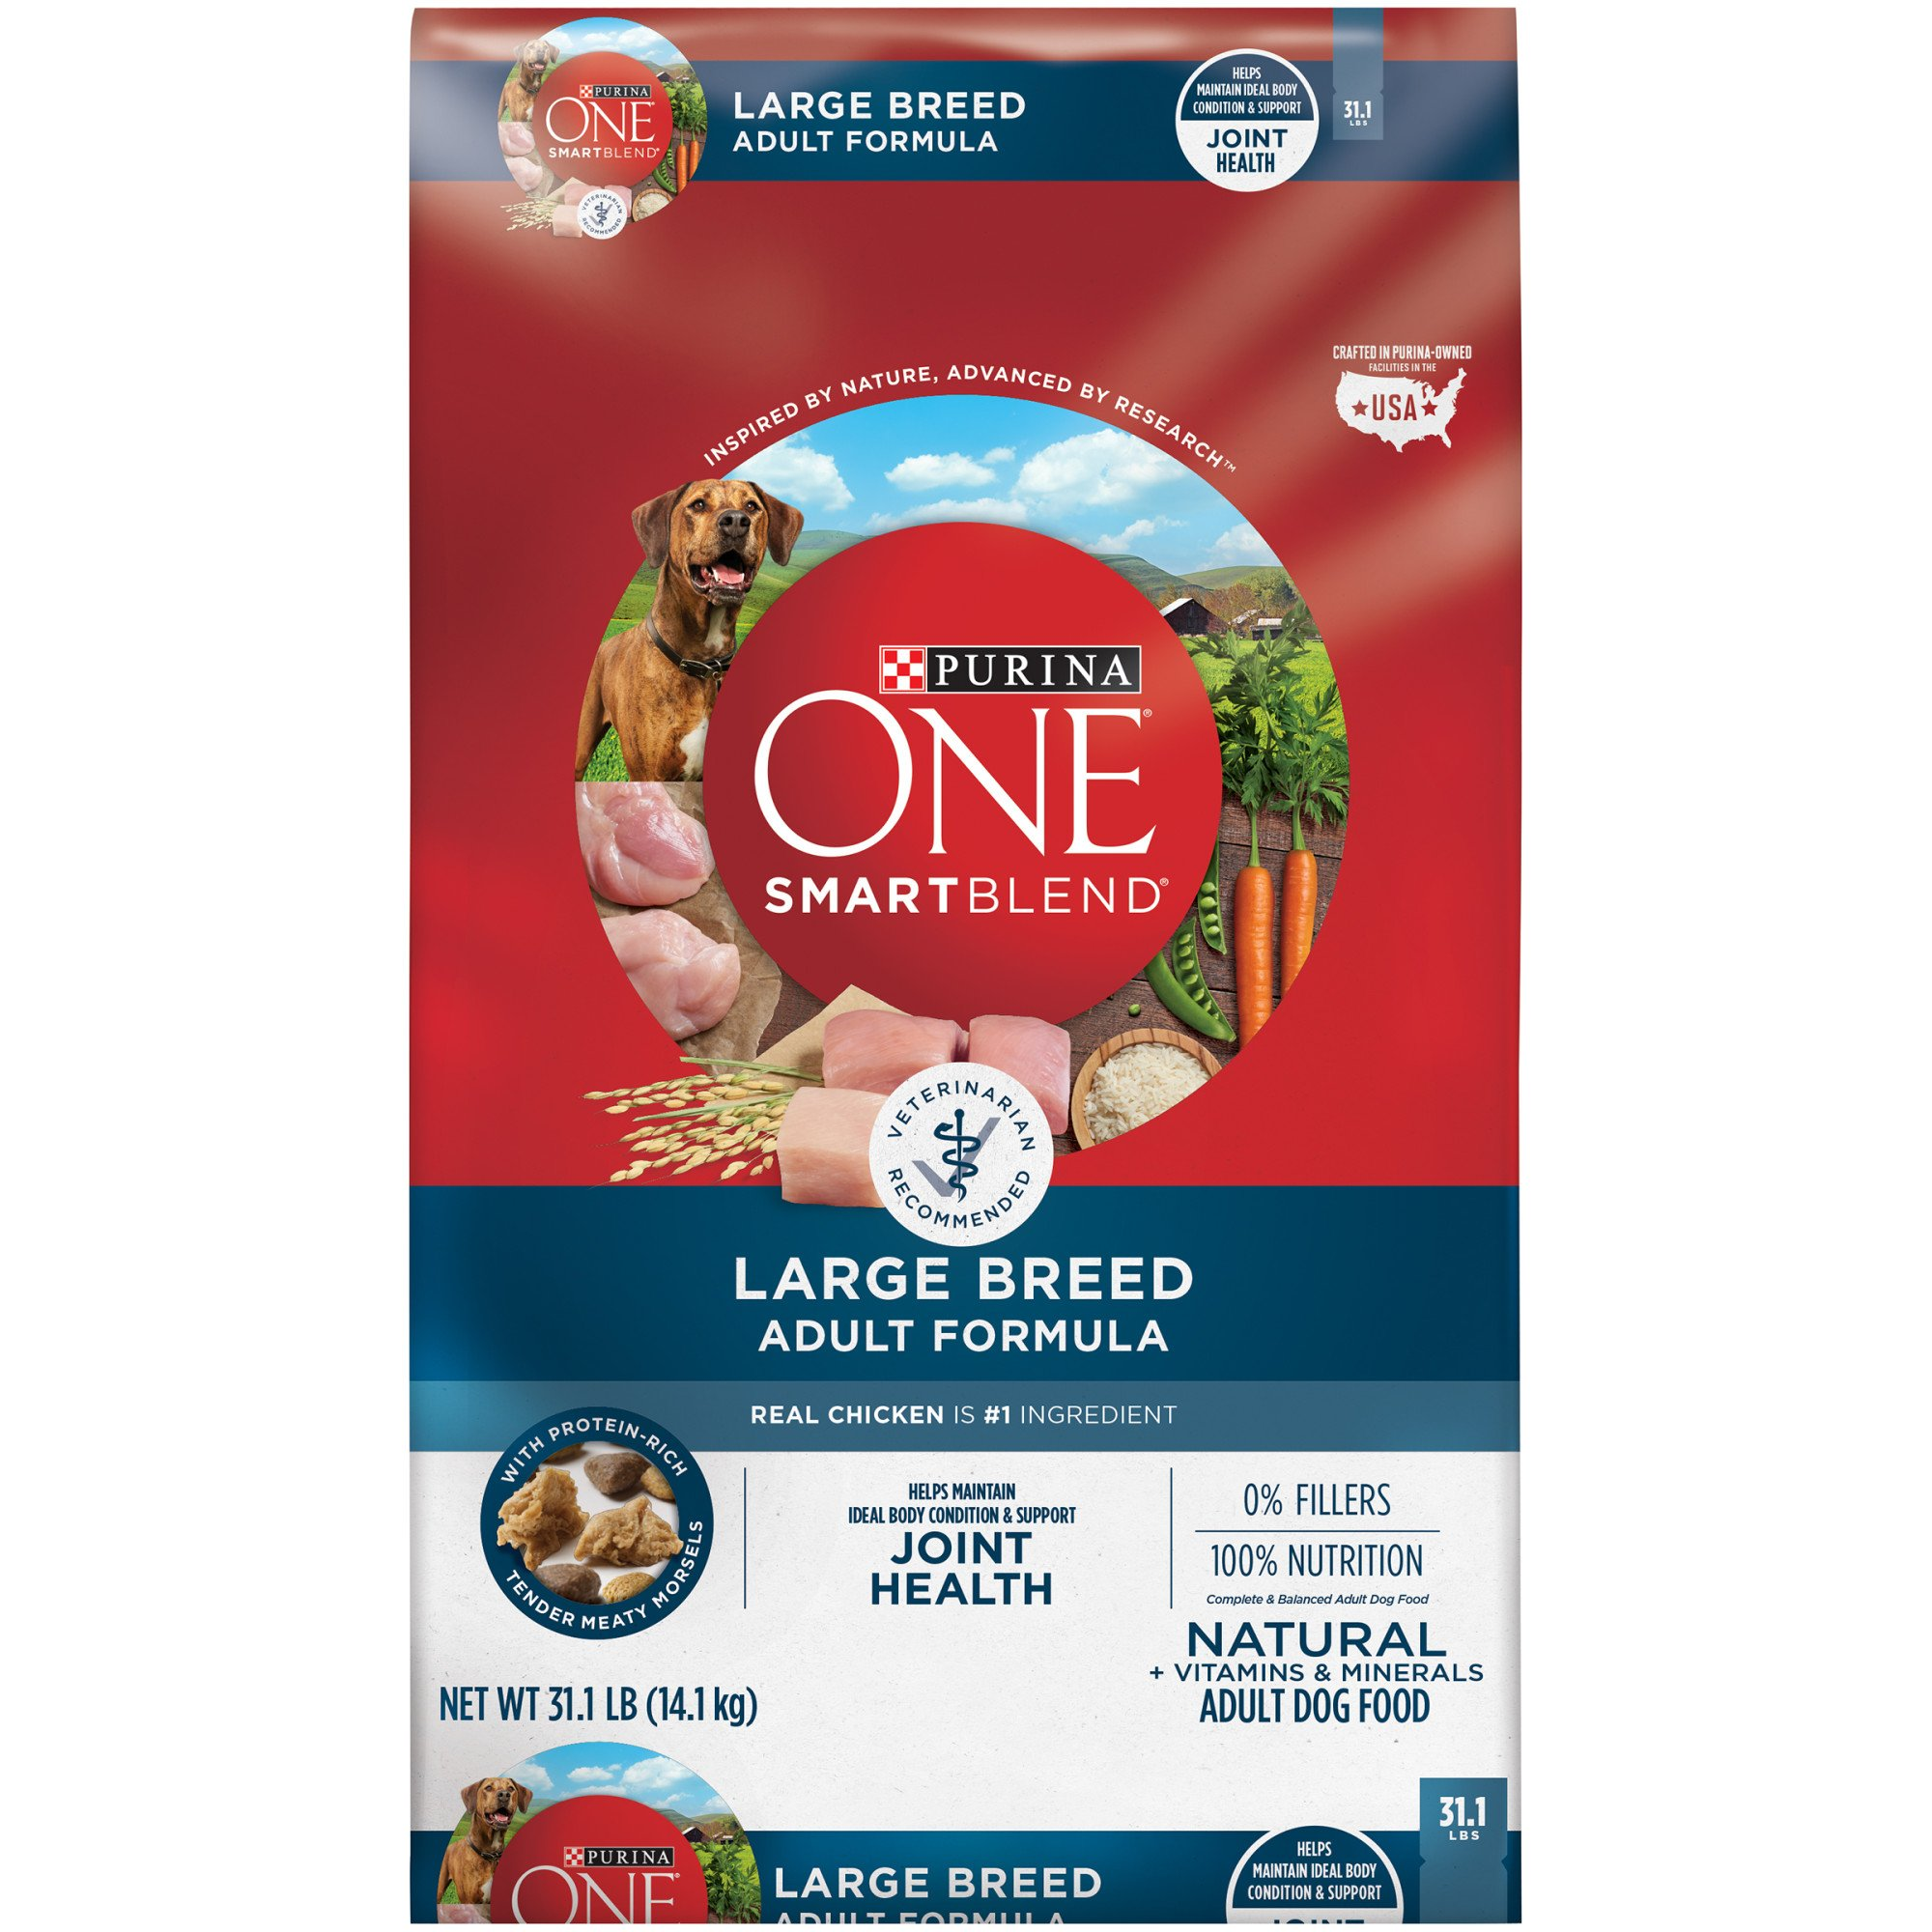 Purina One Small Breed Dog Food